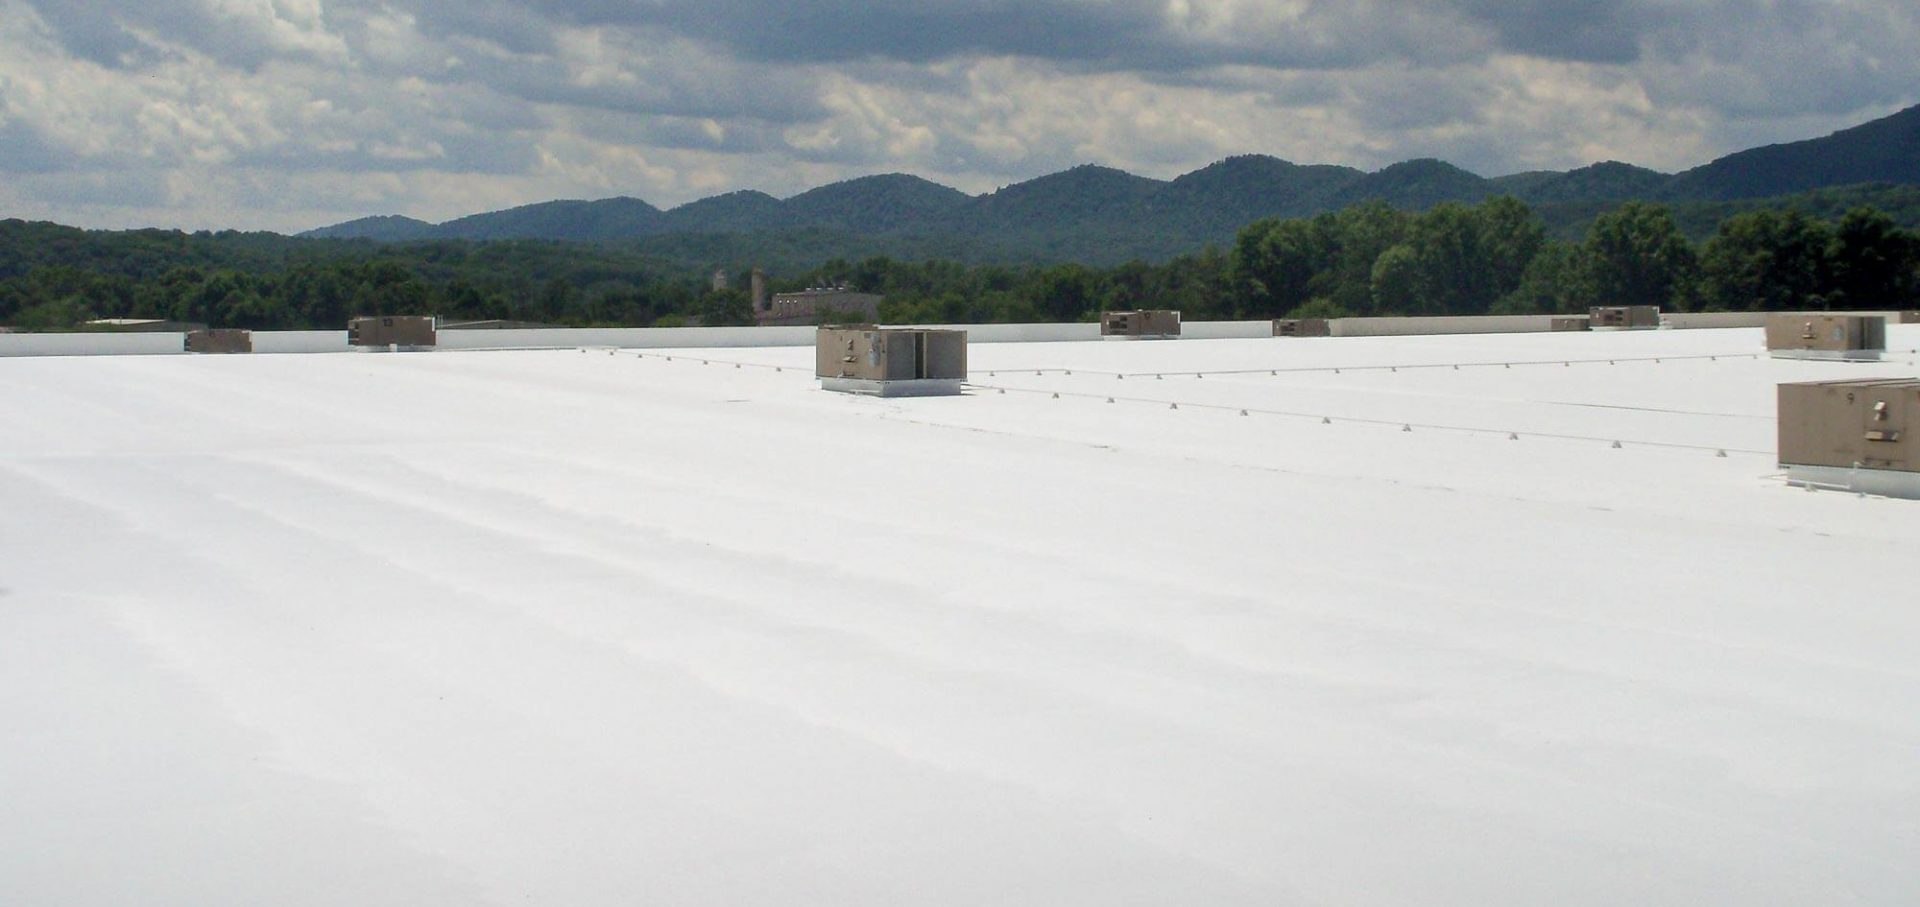 Top view of a fabric reinforced roofing